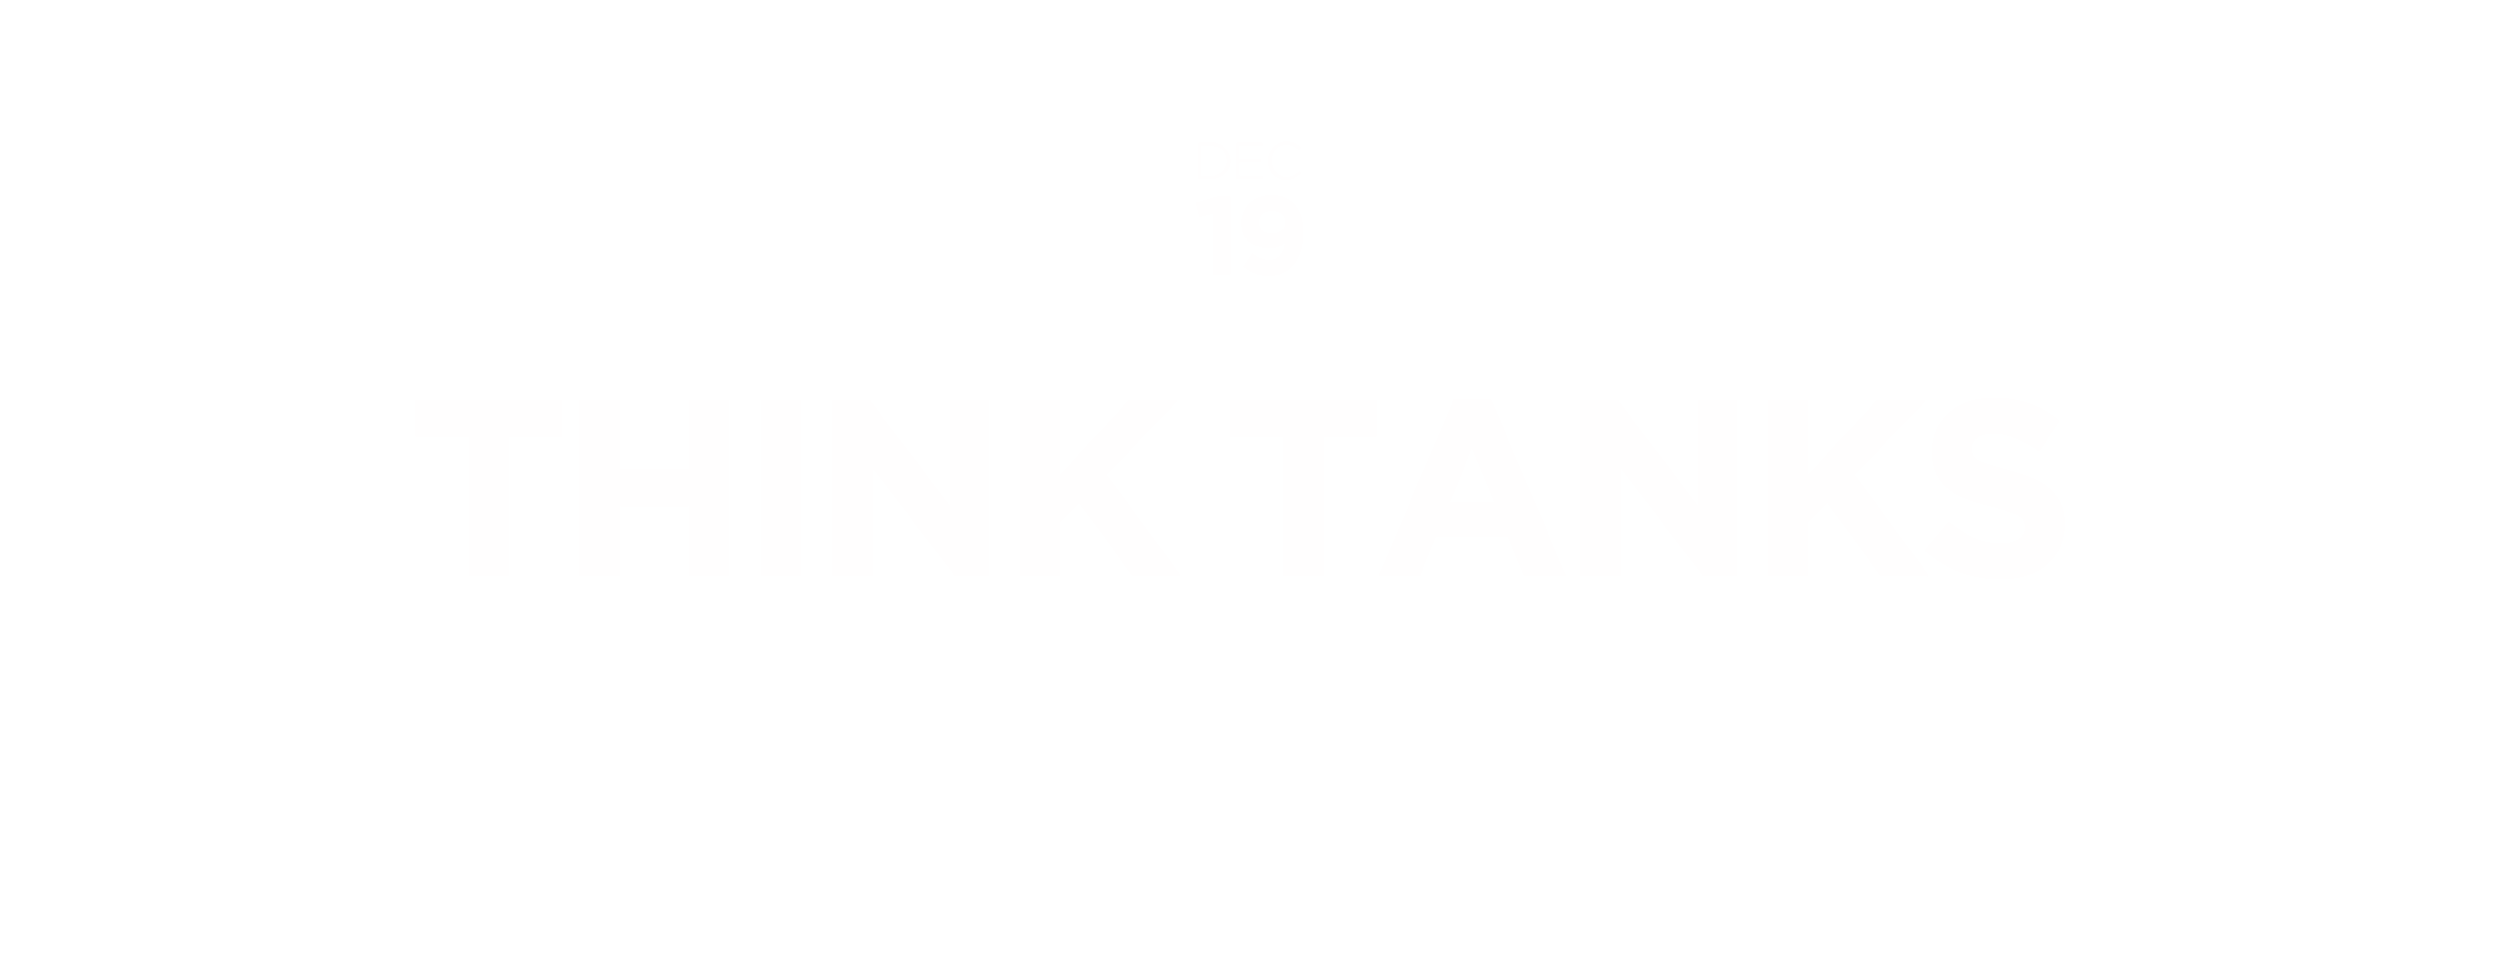 ThinkTankLabel.png